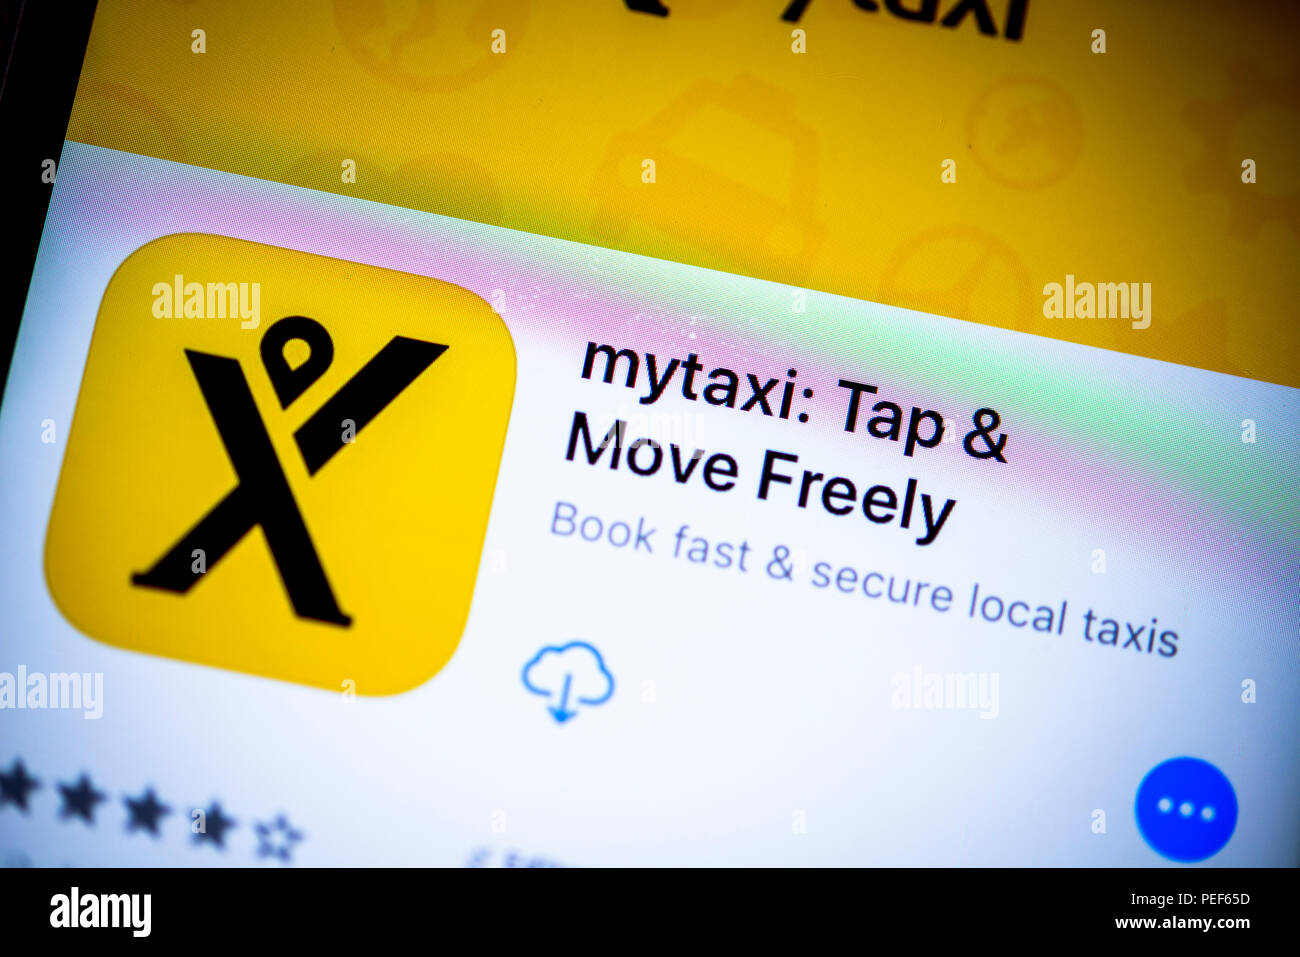 Mytaxi app, taxi hauling app, in the Apple App Store, app icon, display, iPhone, iOS, smartphone, close-up, Germany - Stock Image